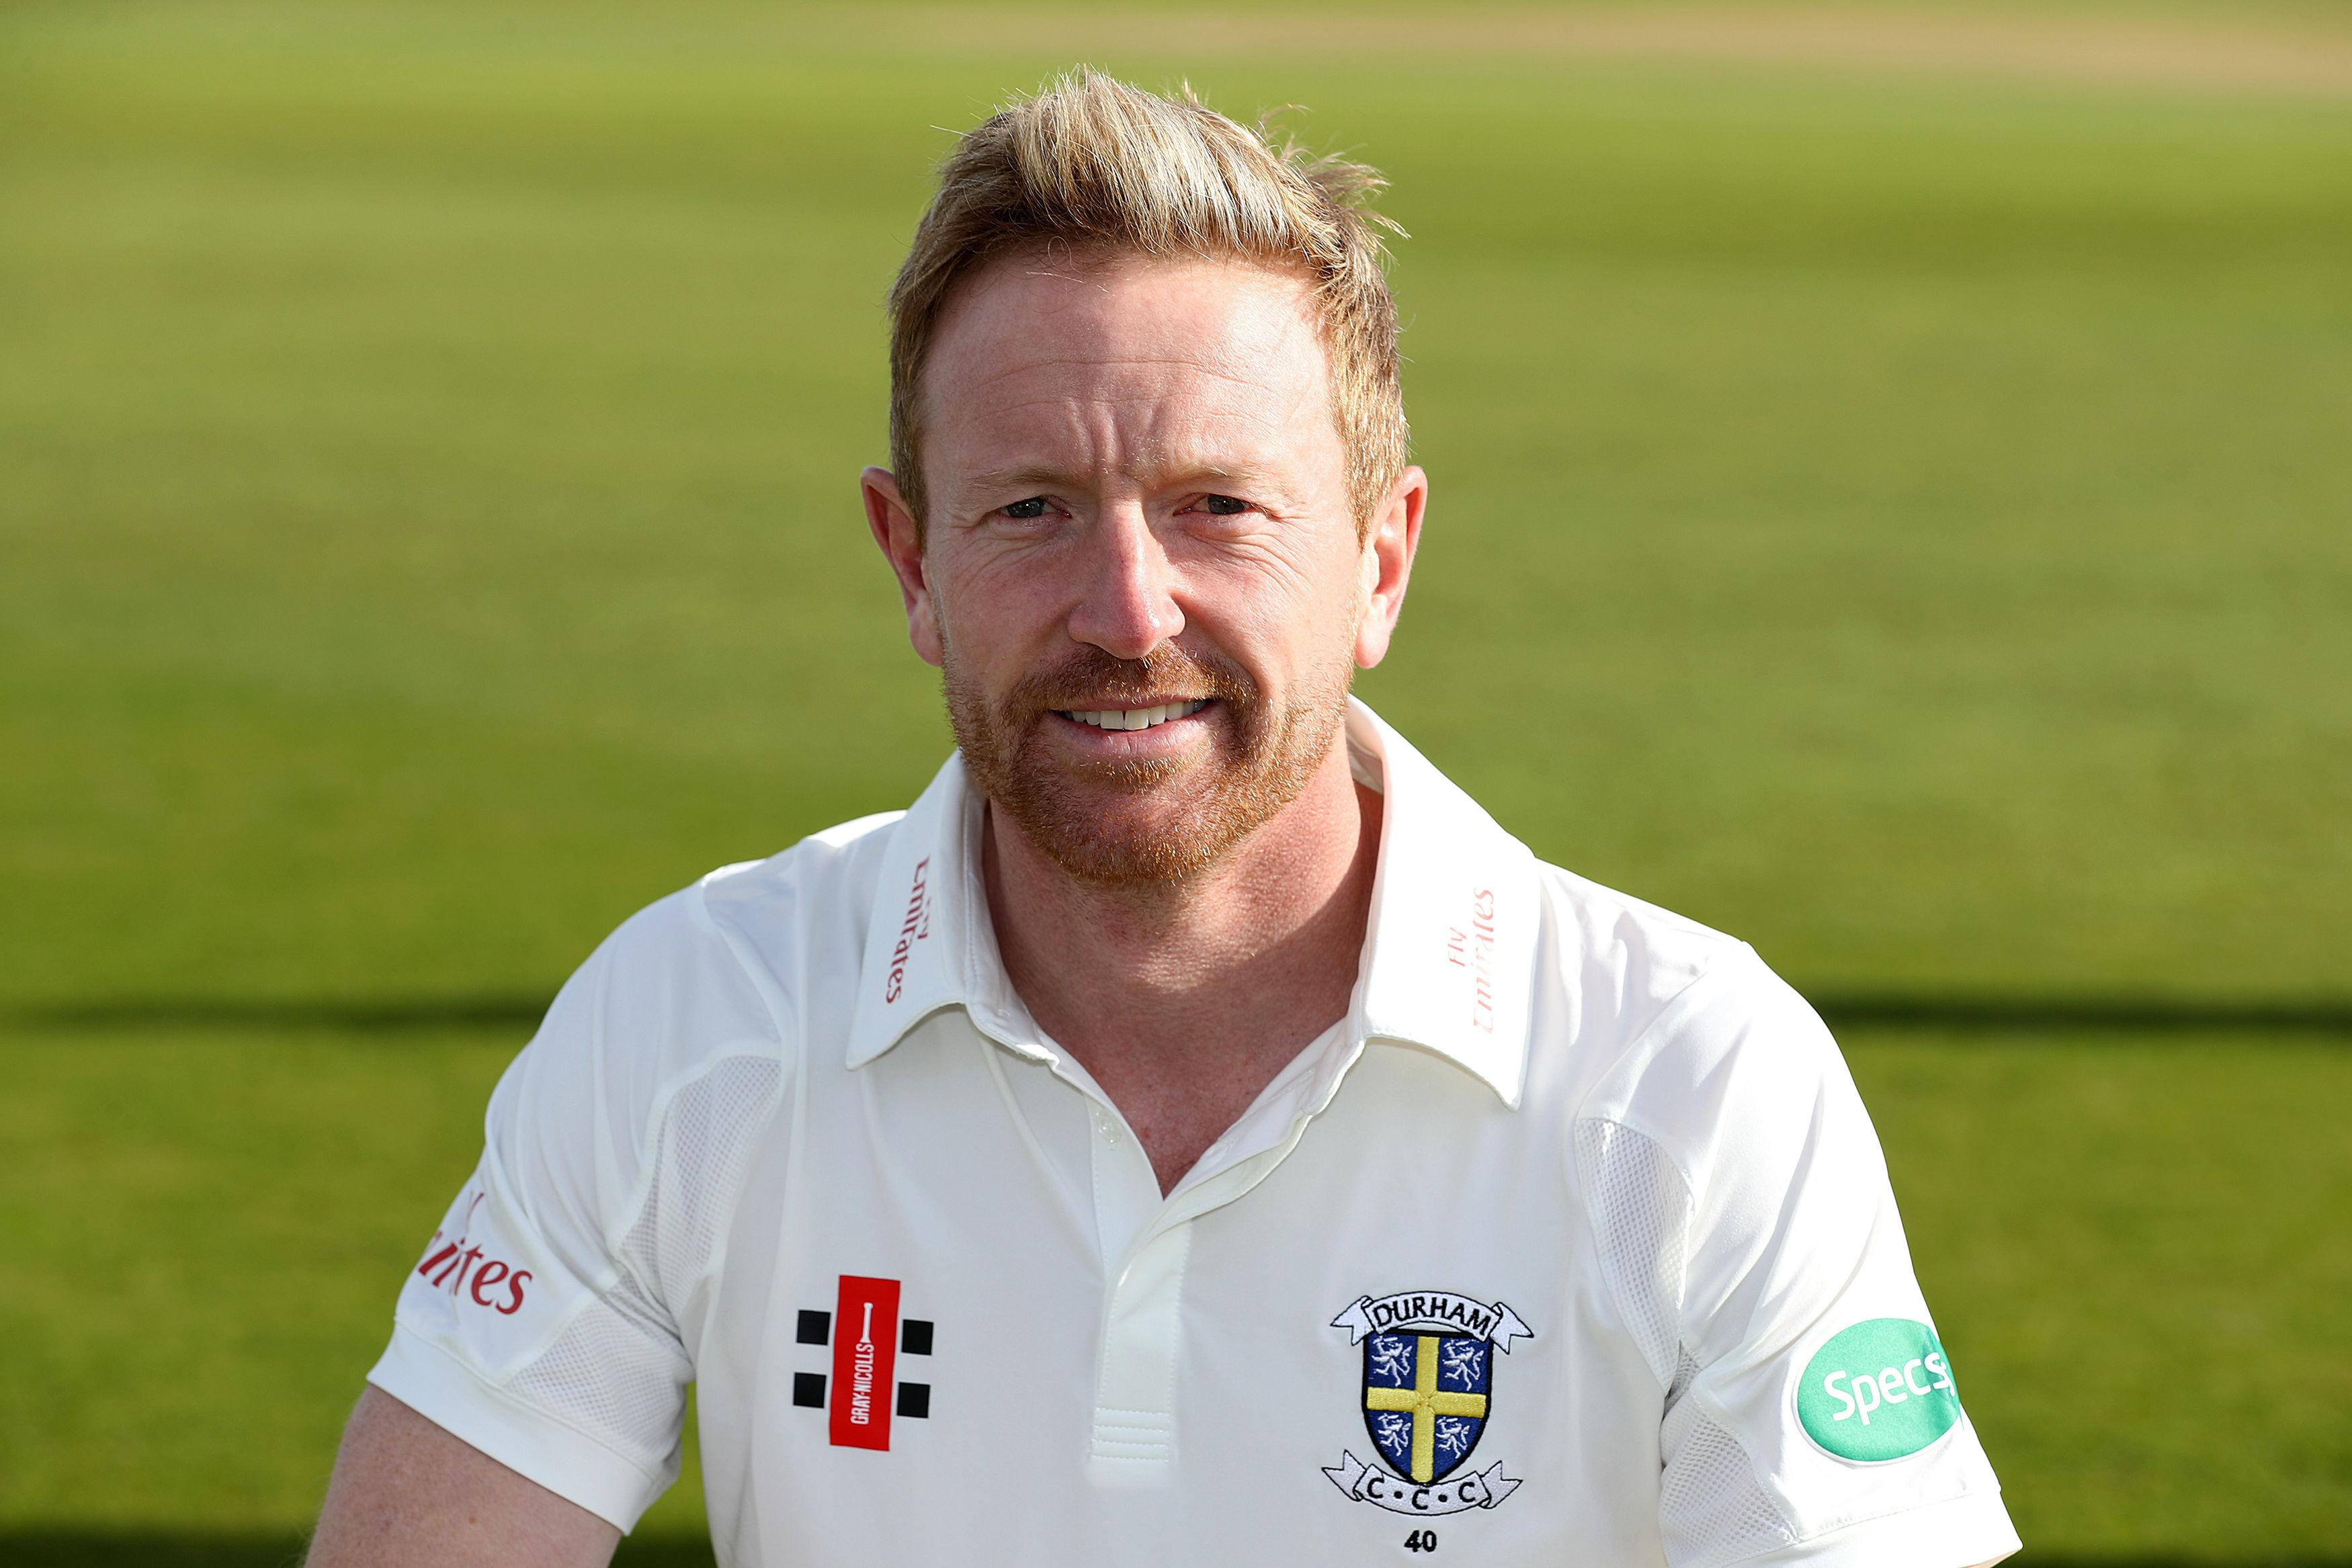 Paul Collingwood has announced he will retire from cricket this month